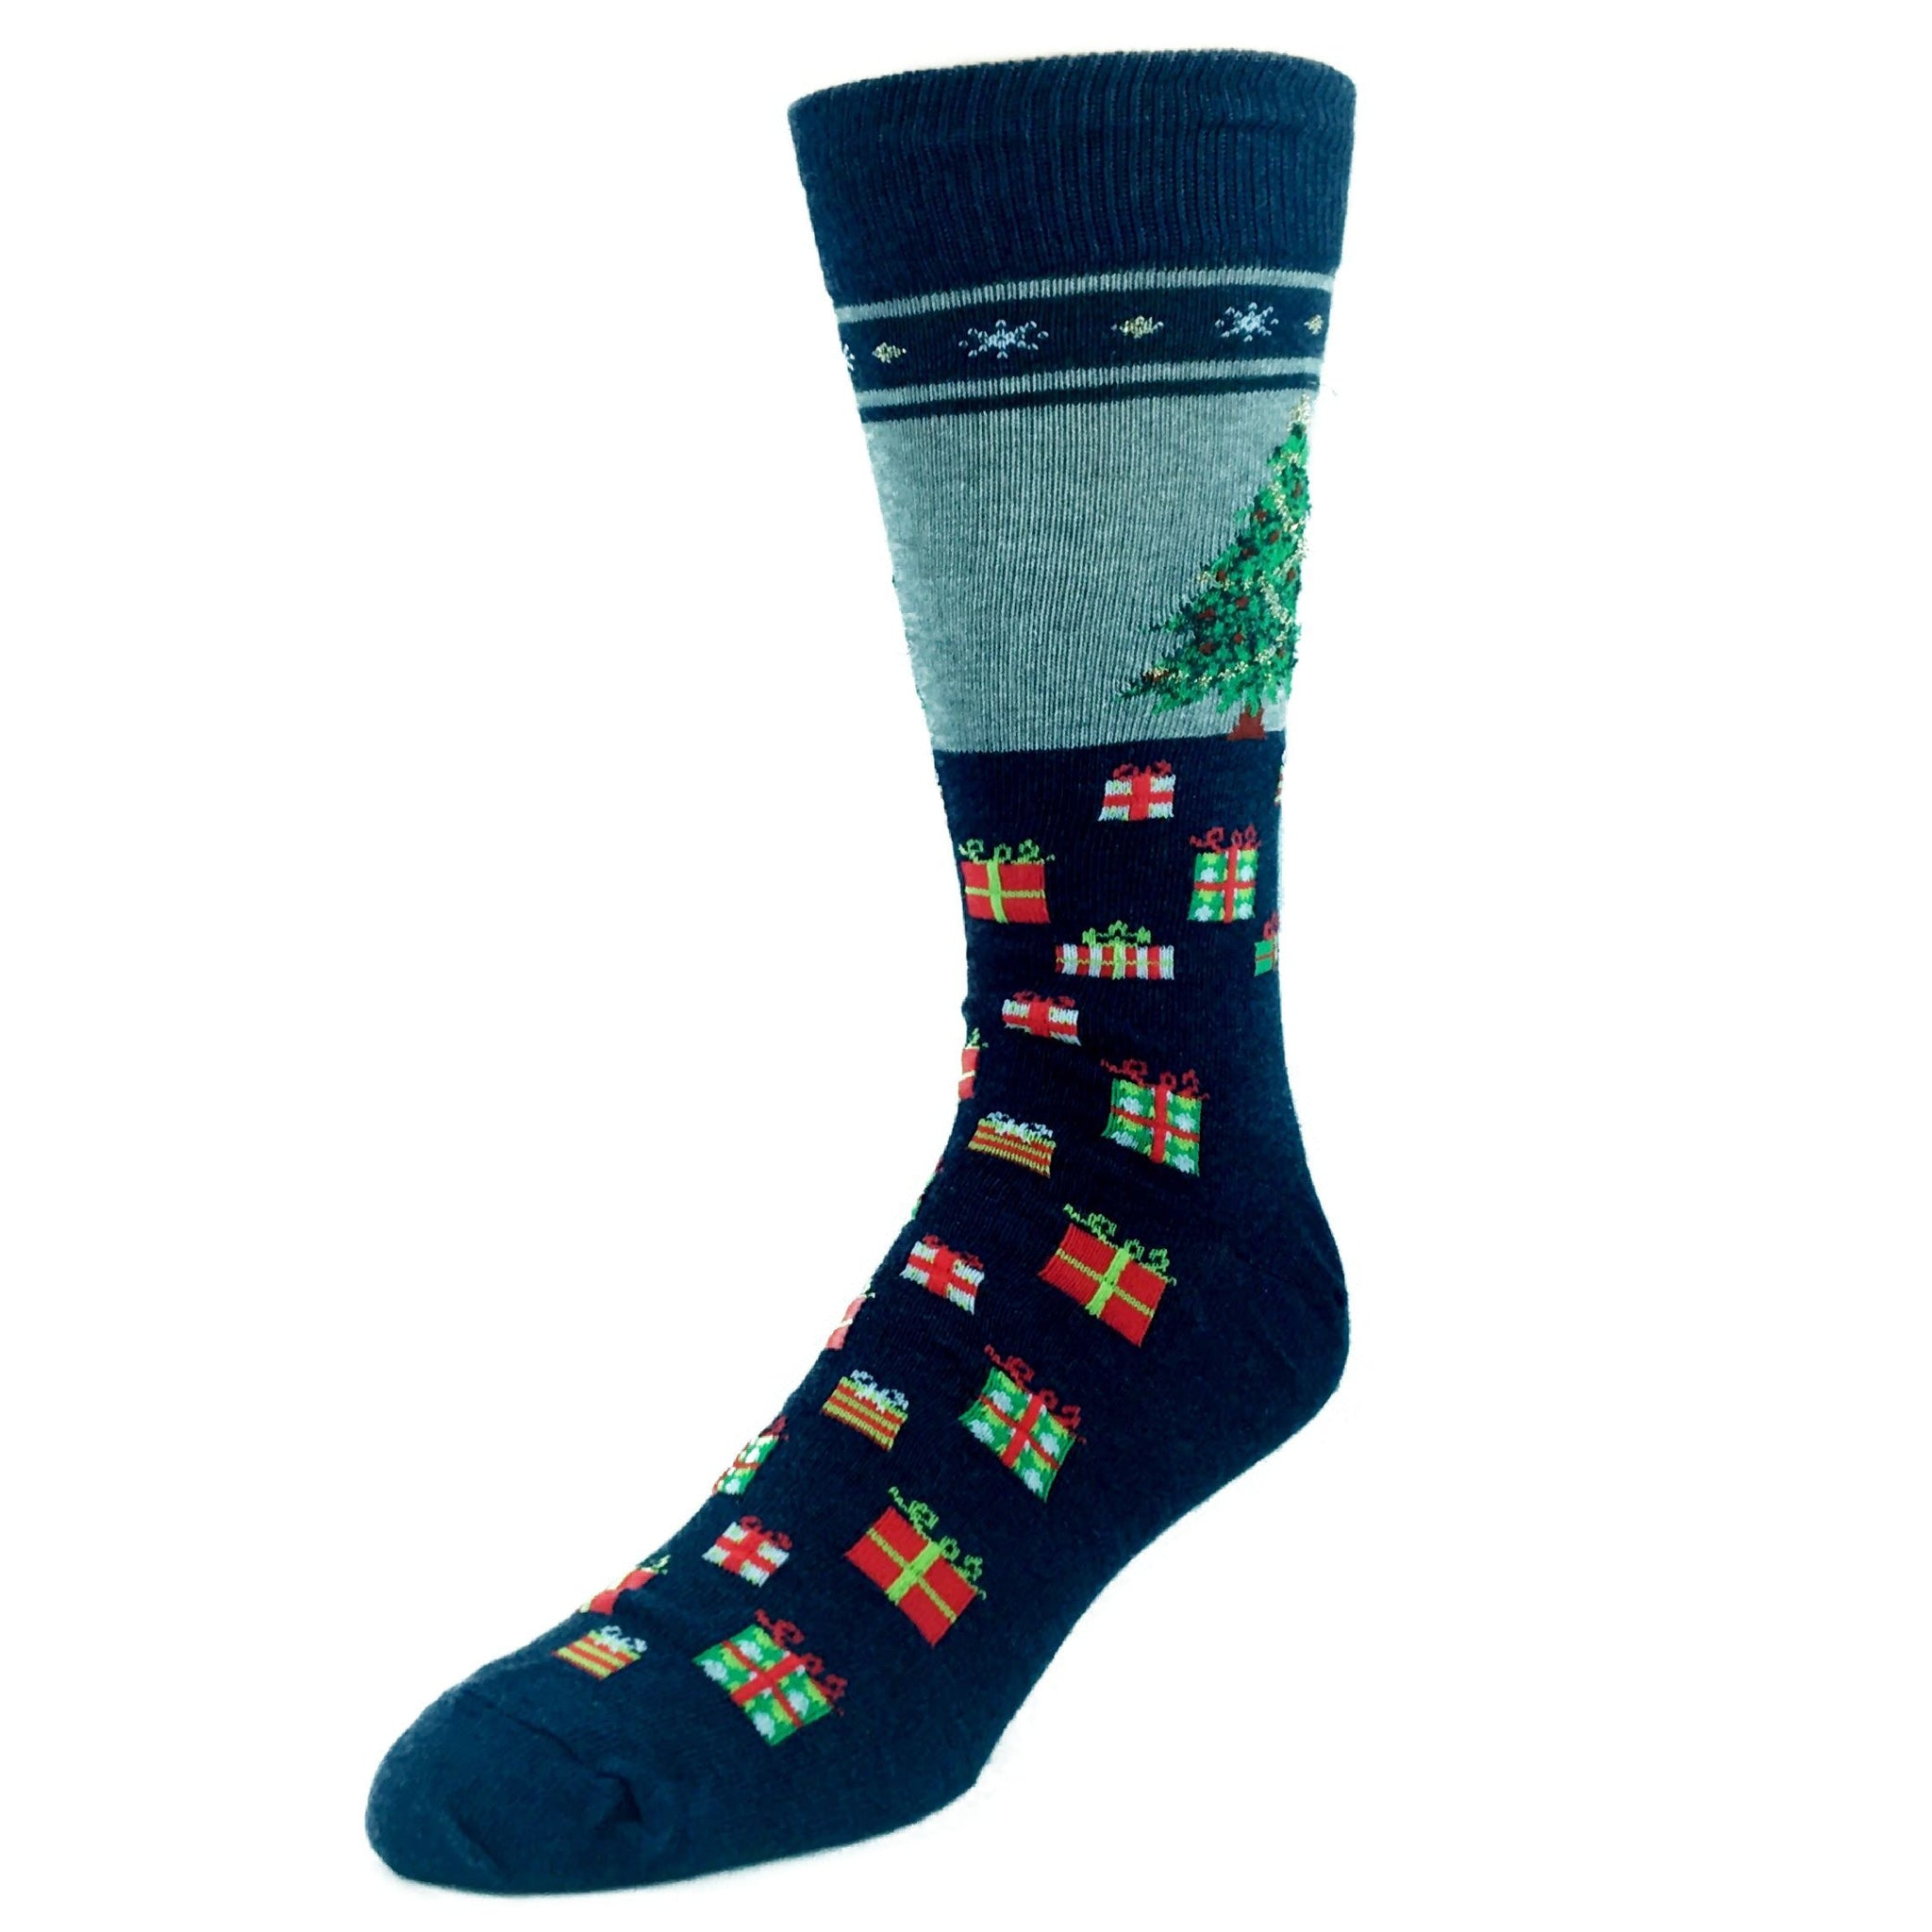 Christmas Tree Non-Skid Socks In Blue by Hot Sox